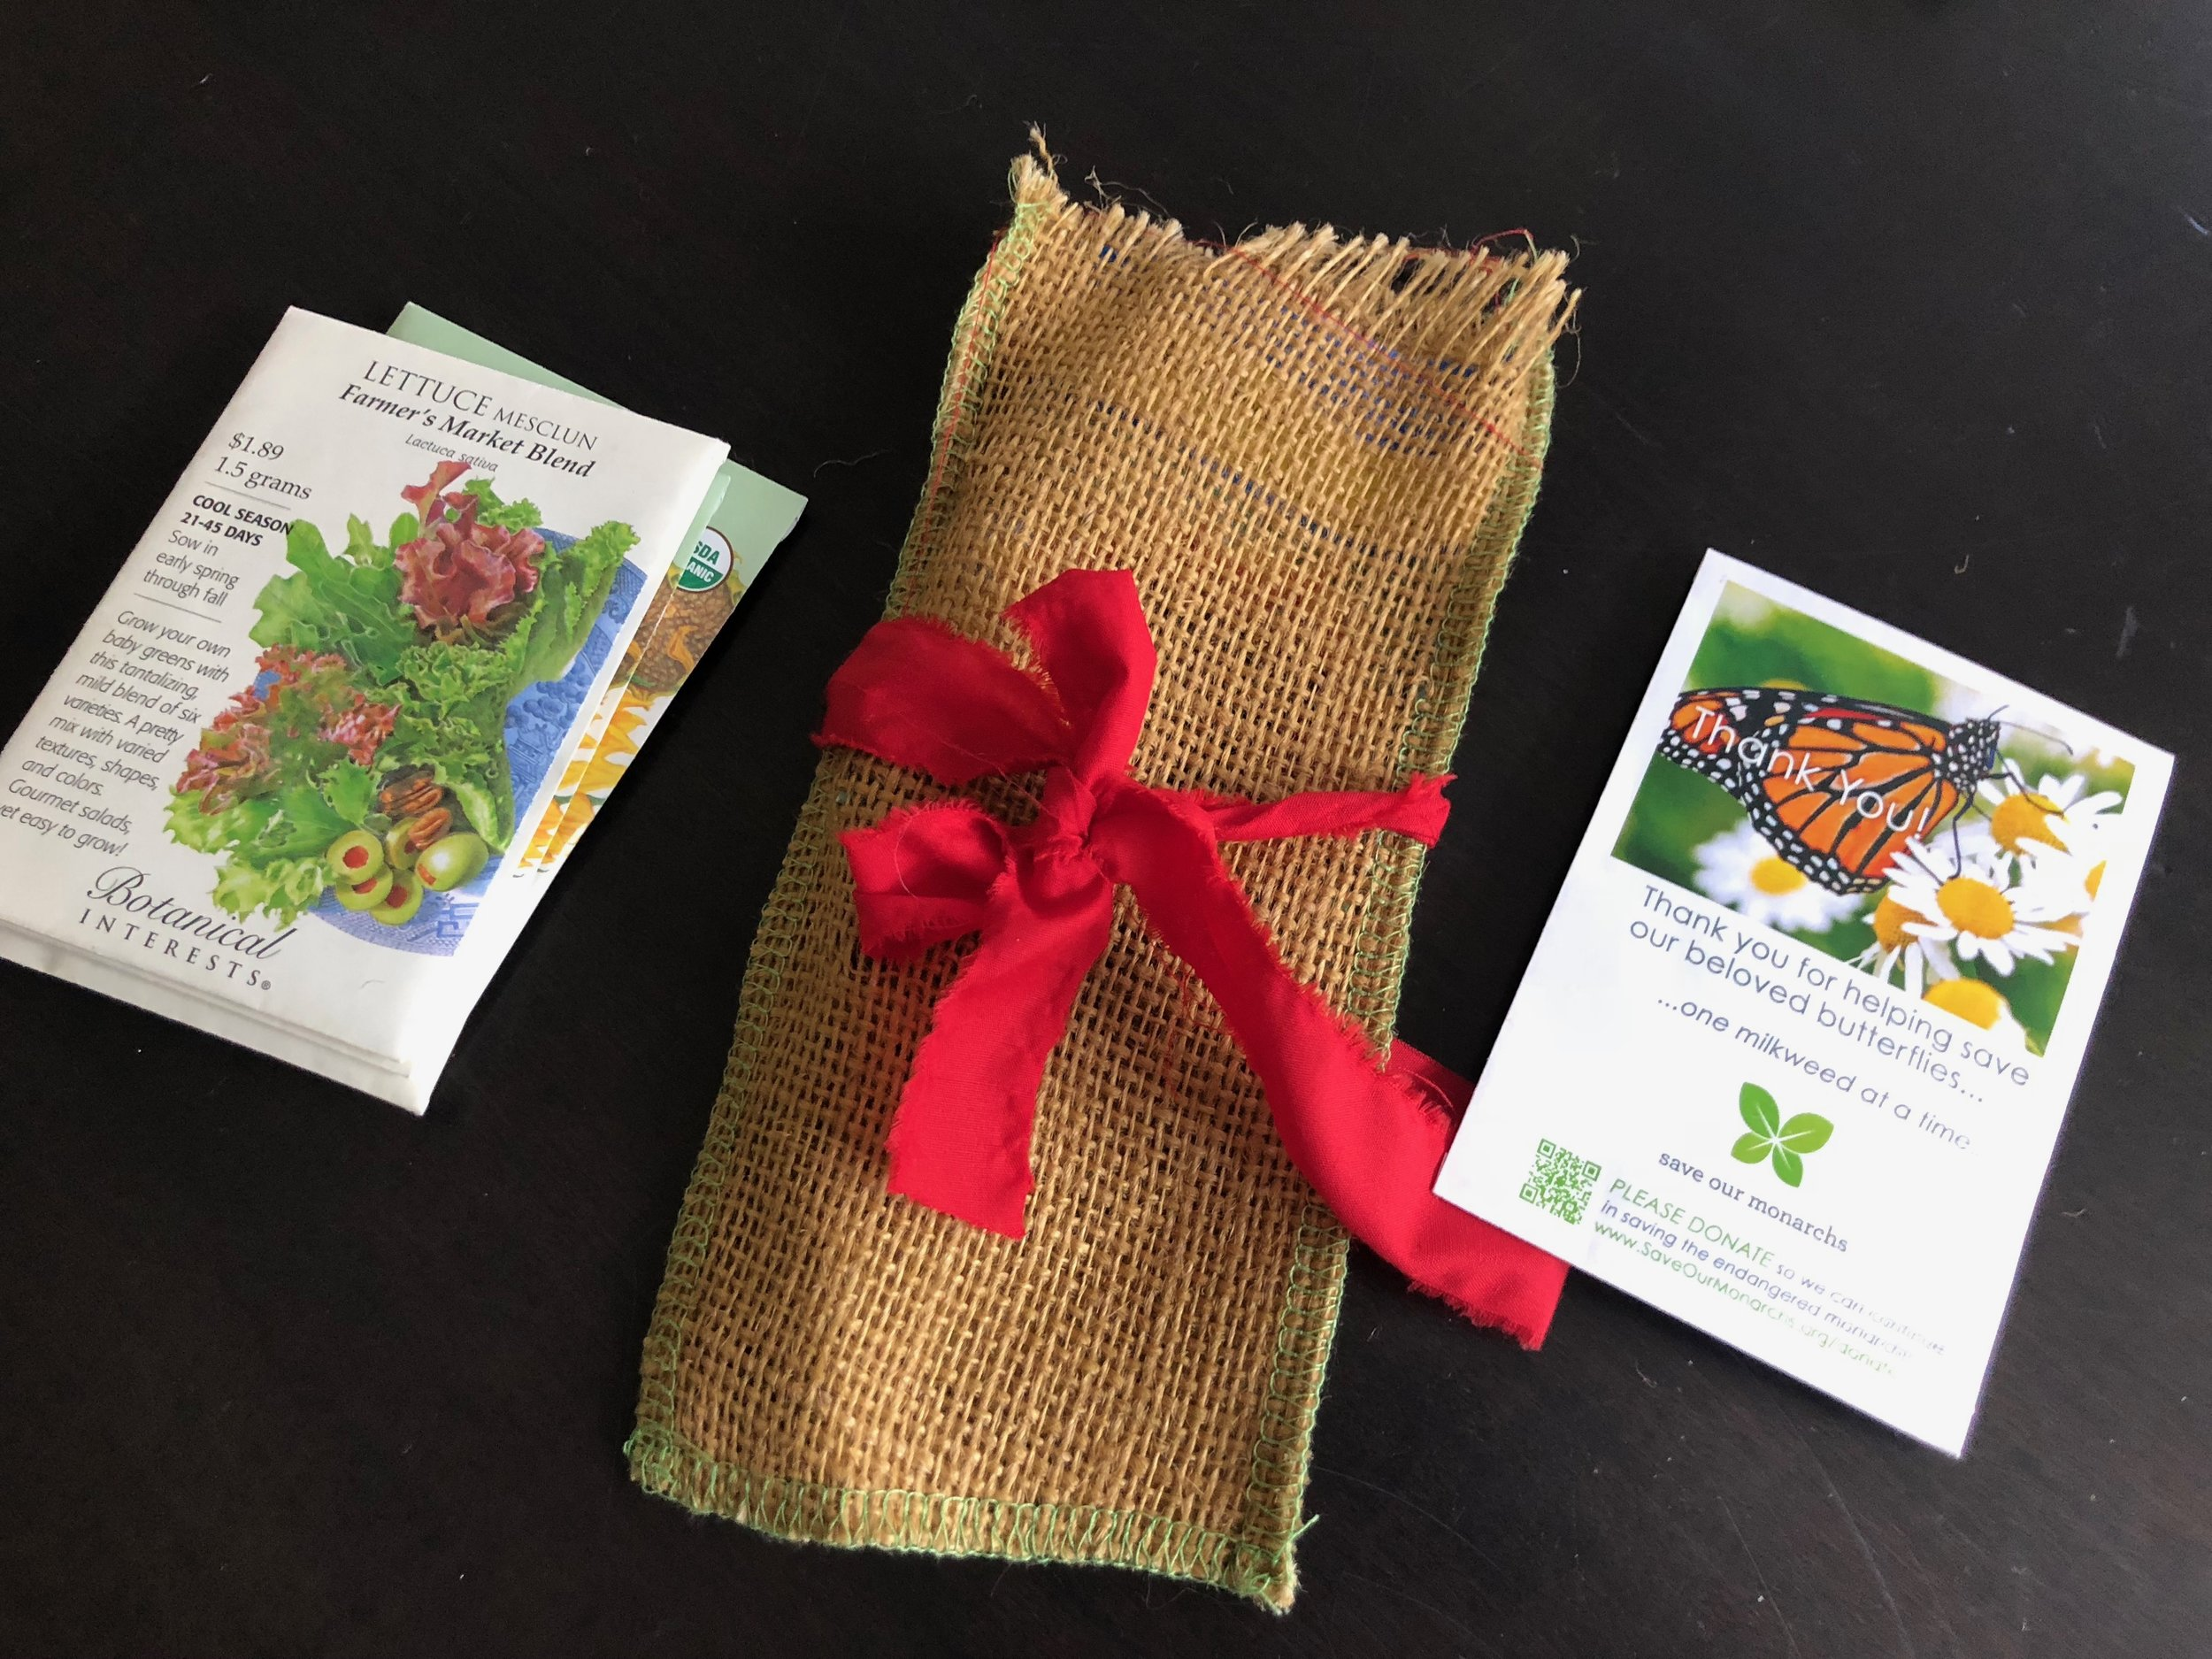 The most famous Blake Lower School parent Mary Guider, whipped these burlap gift bags together for the annual Appreciation Luncheon this Spring. Each bag included a packet of seeds which were sitting at our place settings for us to take home. She sprinkled more packets all around the food tables for decor but also for us to take home. I loved this  thoughtful pinch !